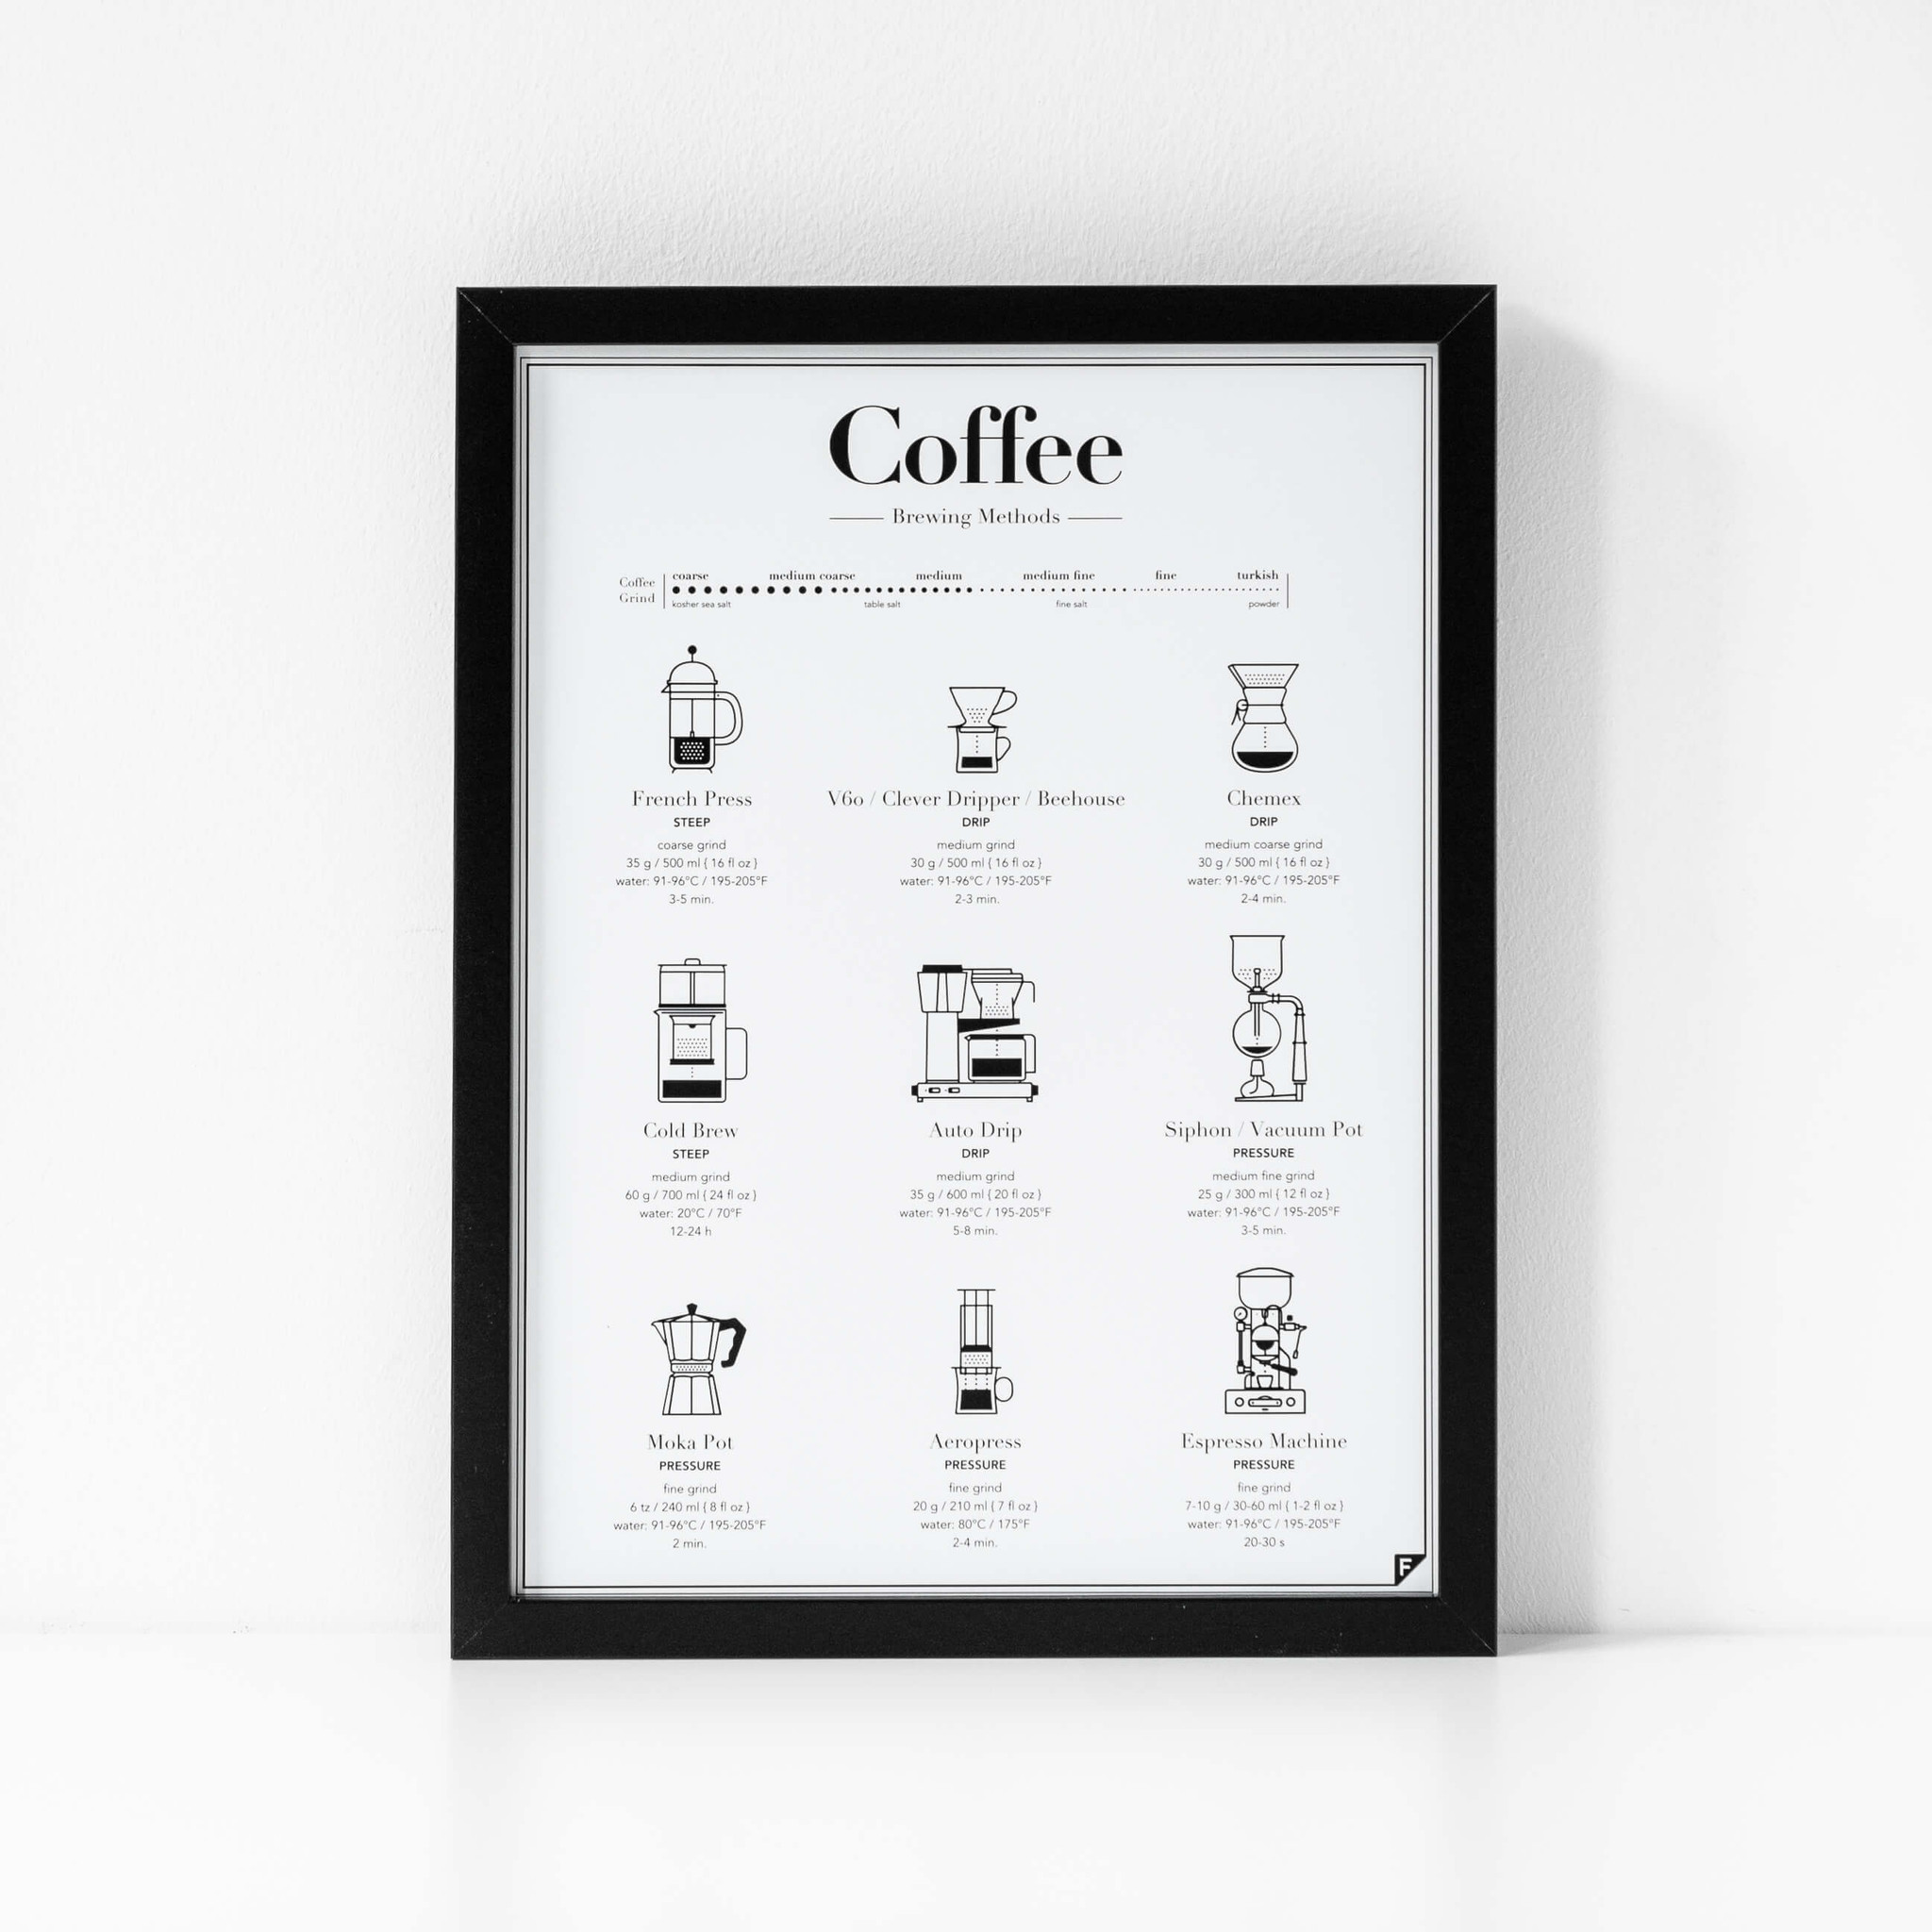 Coffee Brewing Methods - WH